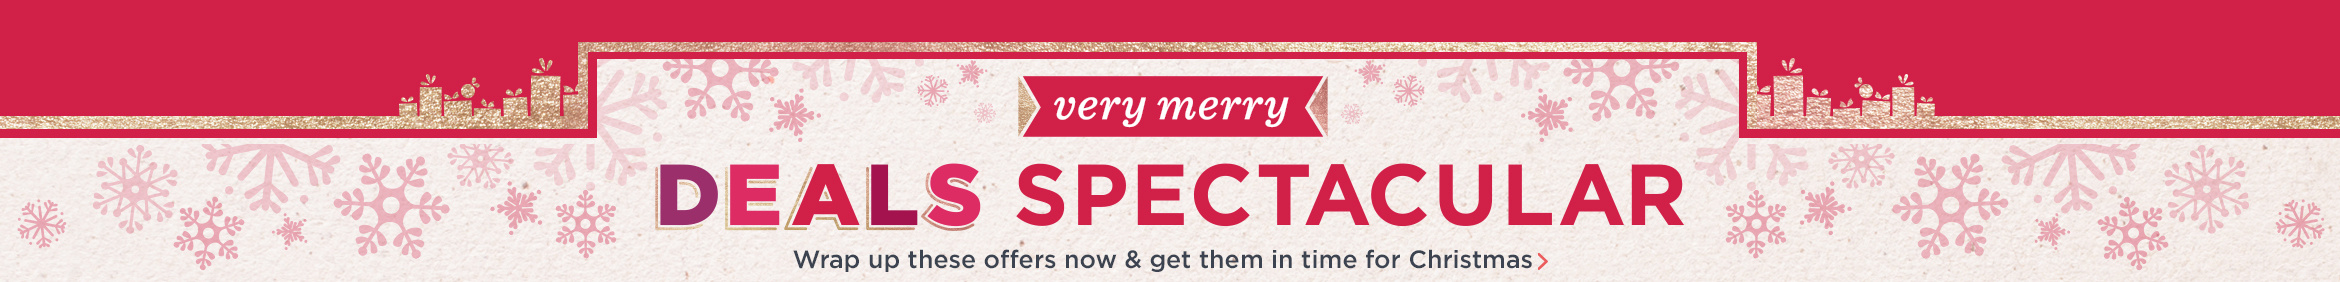 Very Merry Deals Spectacular — Wrap up these offers now & get them in time for Christmas